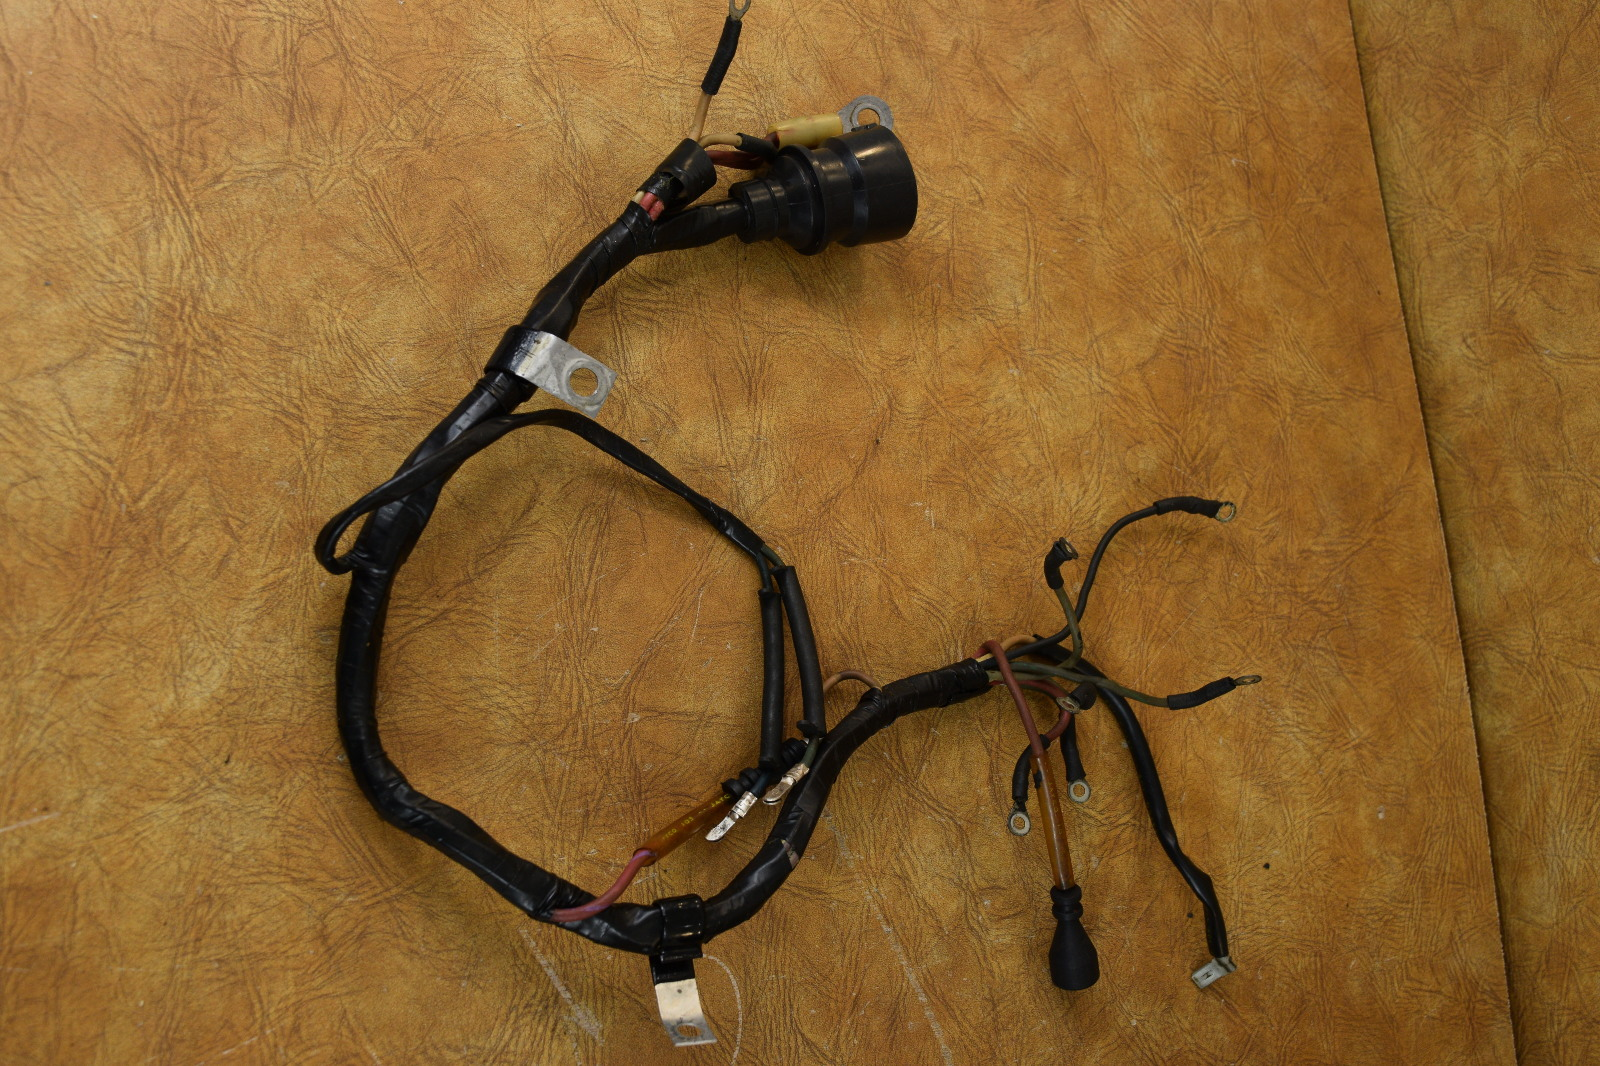 4239 mwh 384050 johnson evinrude motor cable 1970 1971 60 hp 3 cyl 1970 1971 johnson evinrude wiring harness 384050 60 hp 3 cylinder,1970 60 Hp Johnson Outboard Wiring